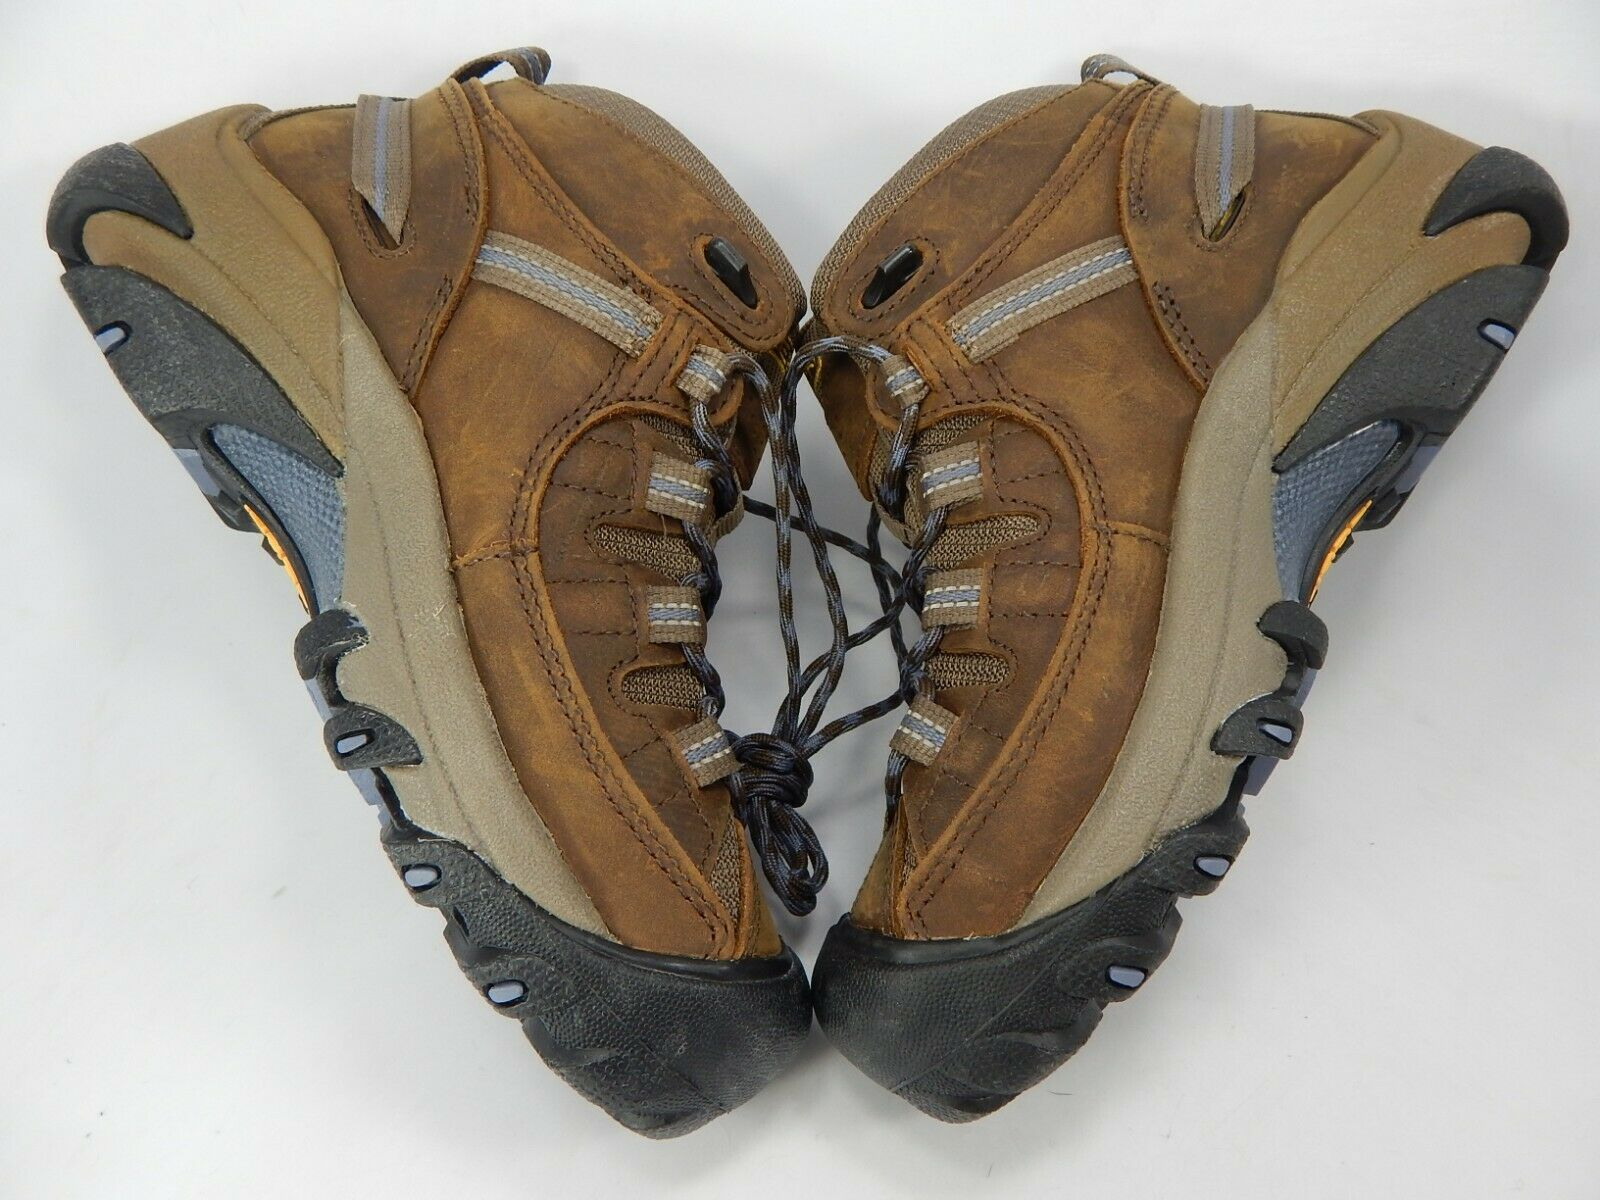 Keen Targhee II Mid Top Sz 6.5 M (B) EU 37 Women's WP Trail Hiking Boots 1004114